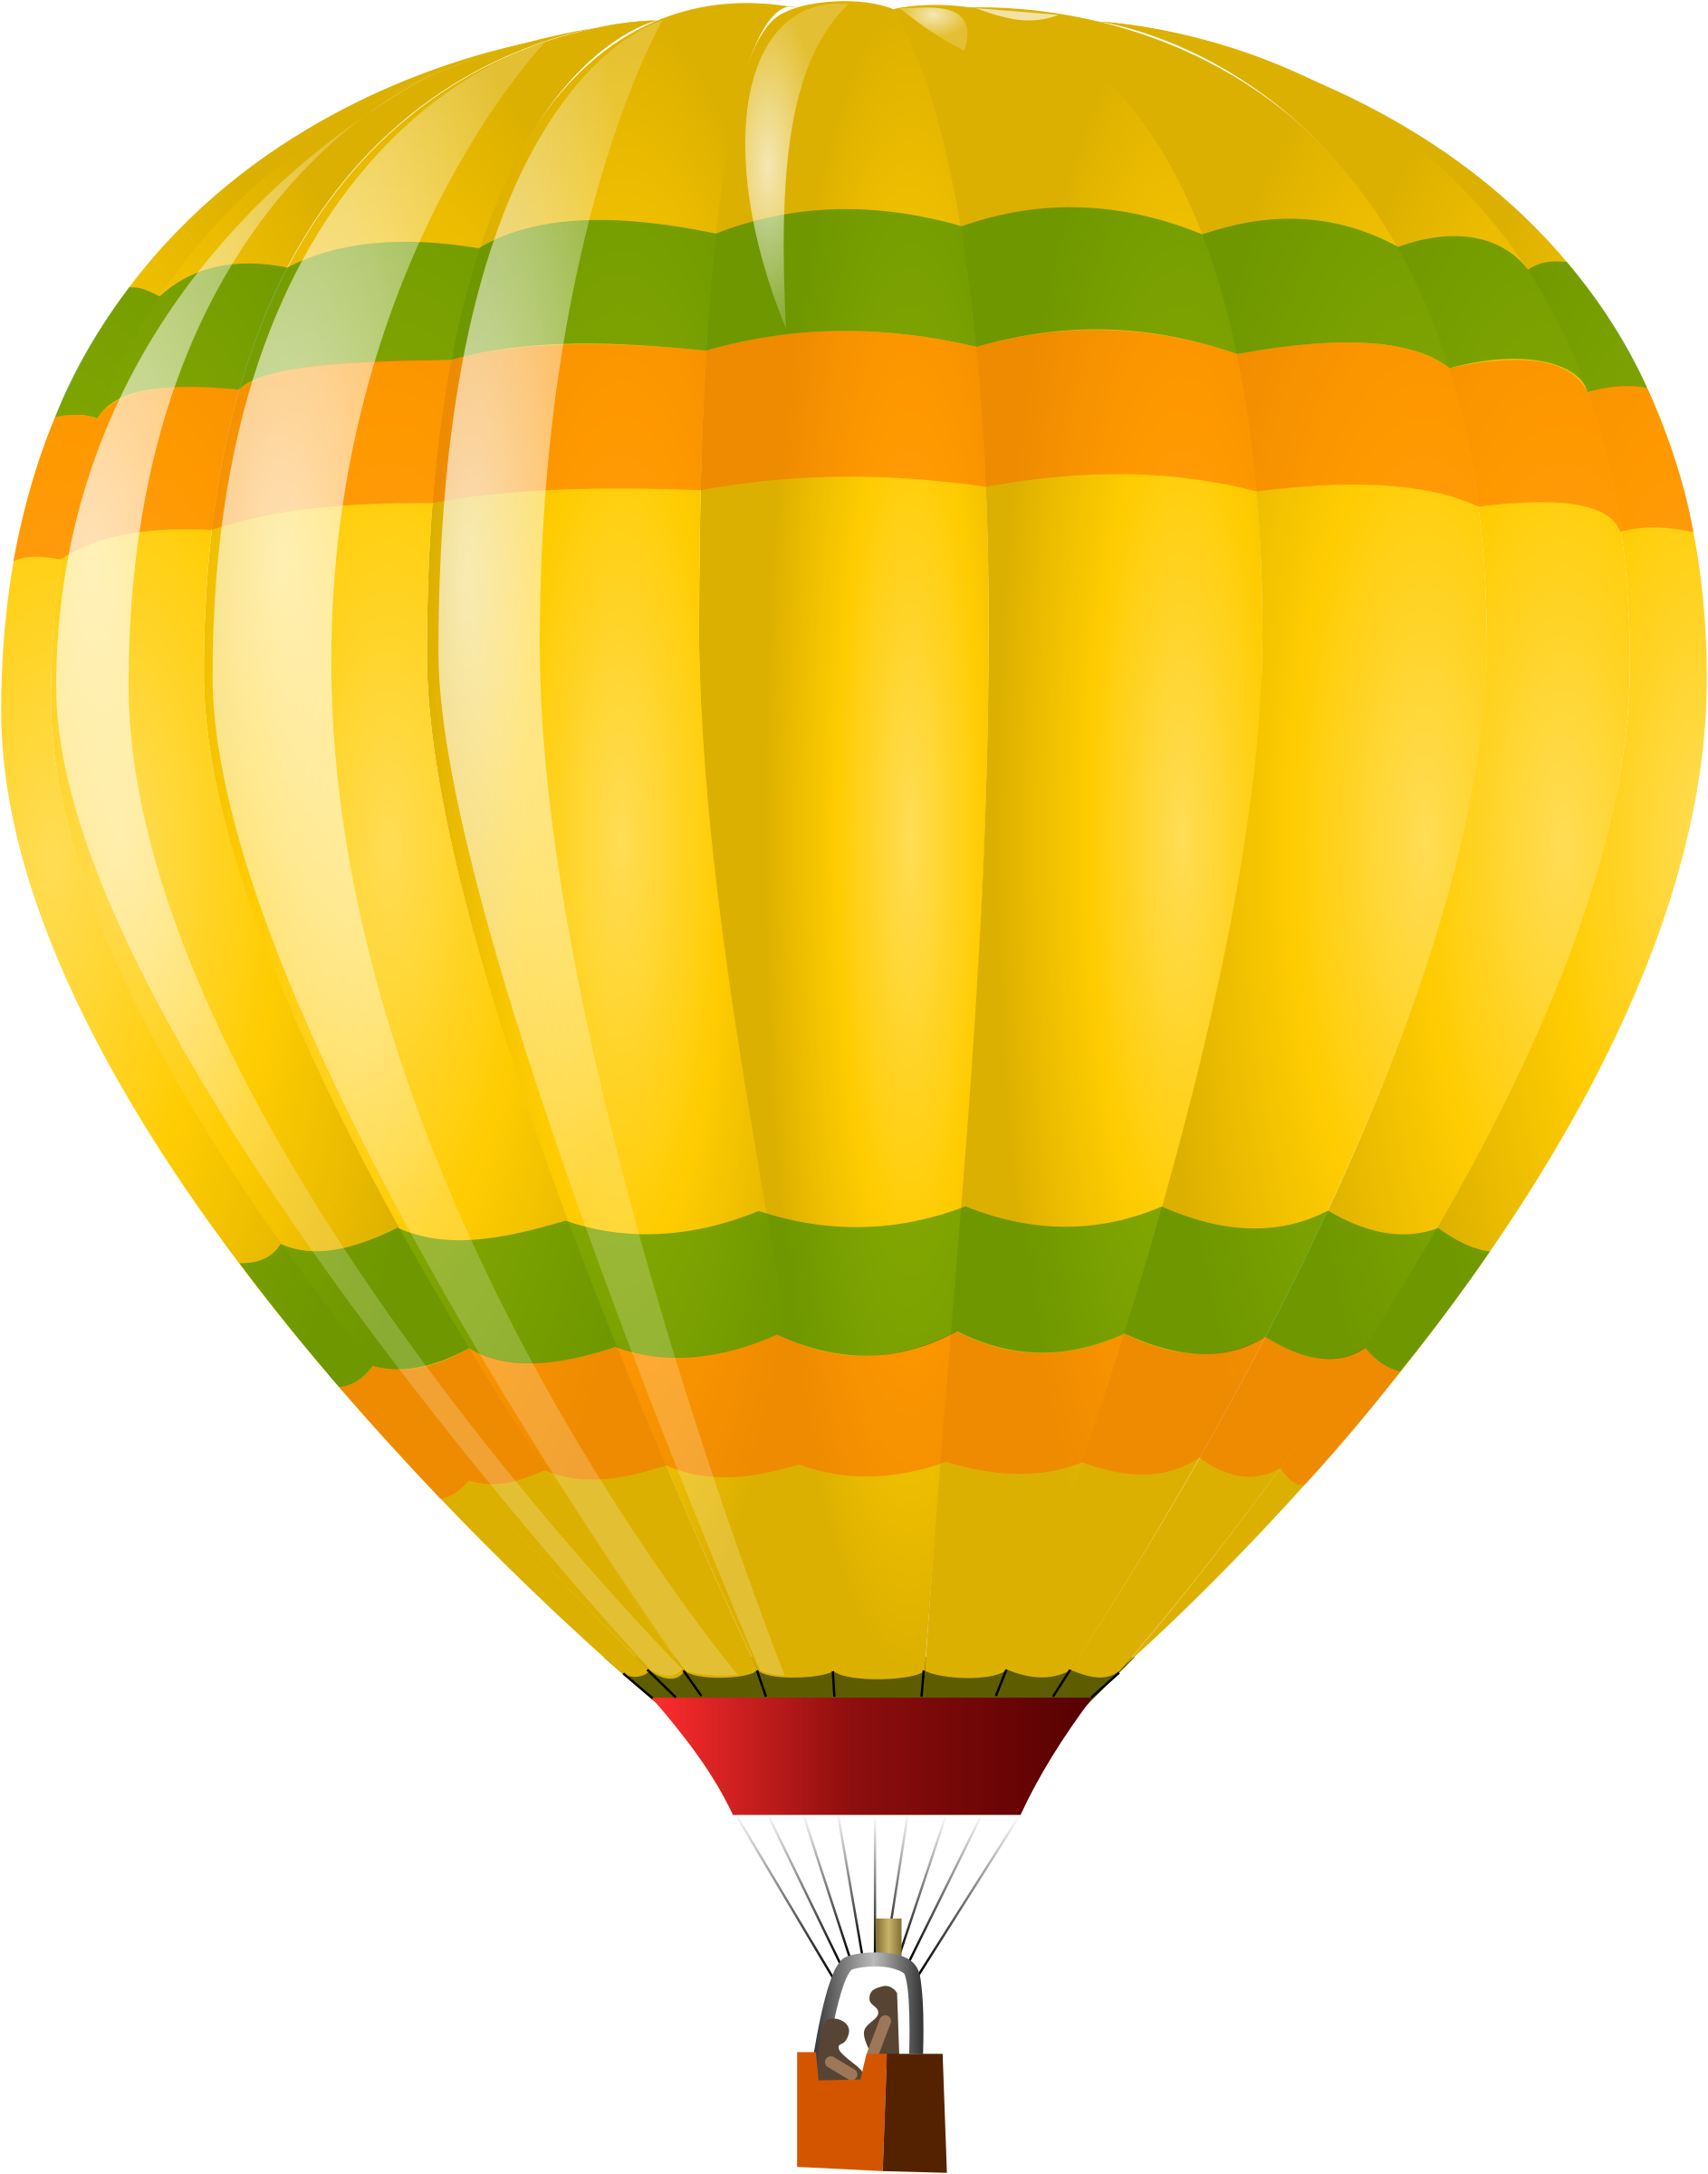 Hot air balloon png transparent background. Hd free icons and